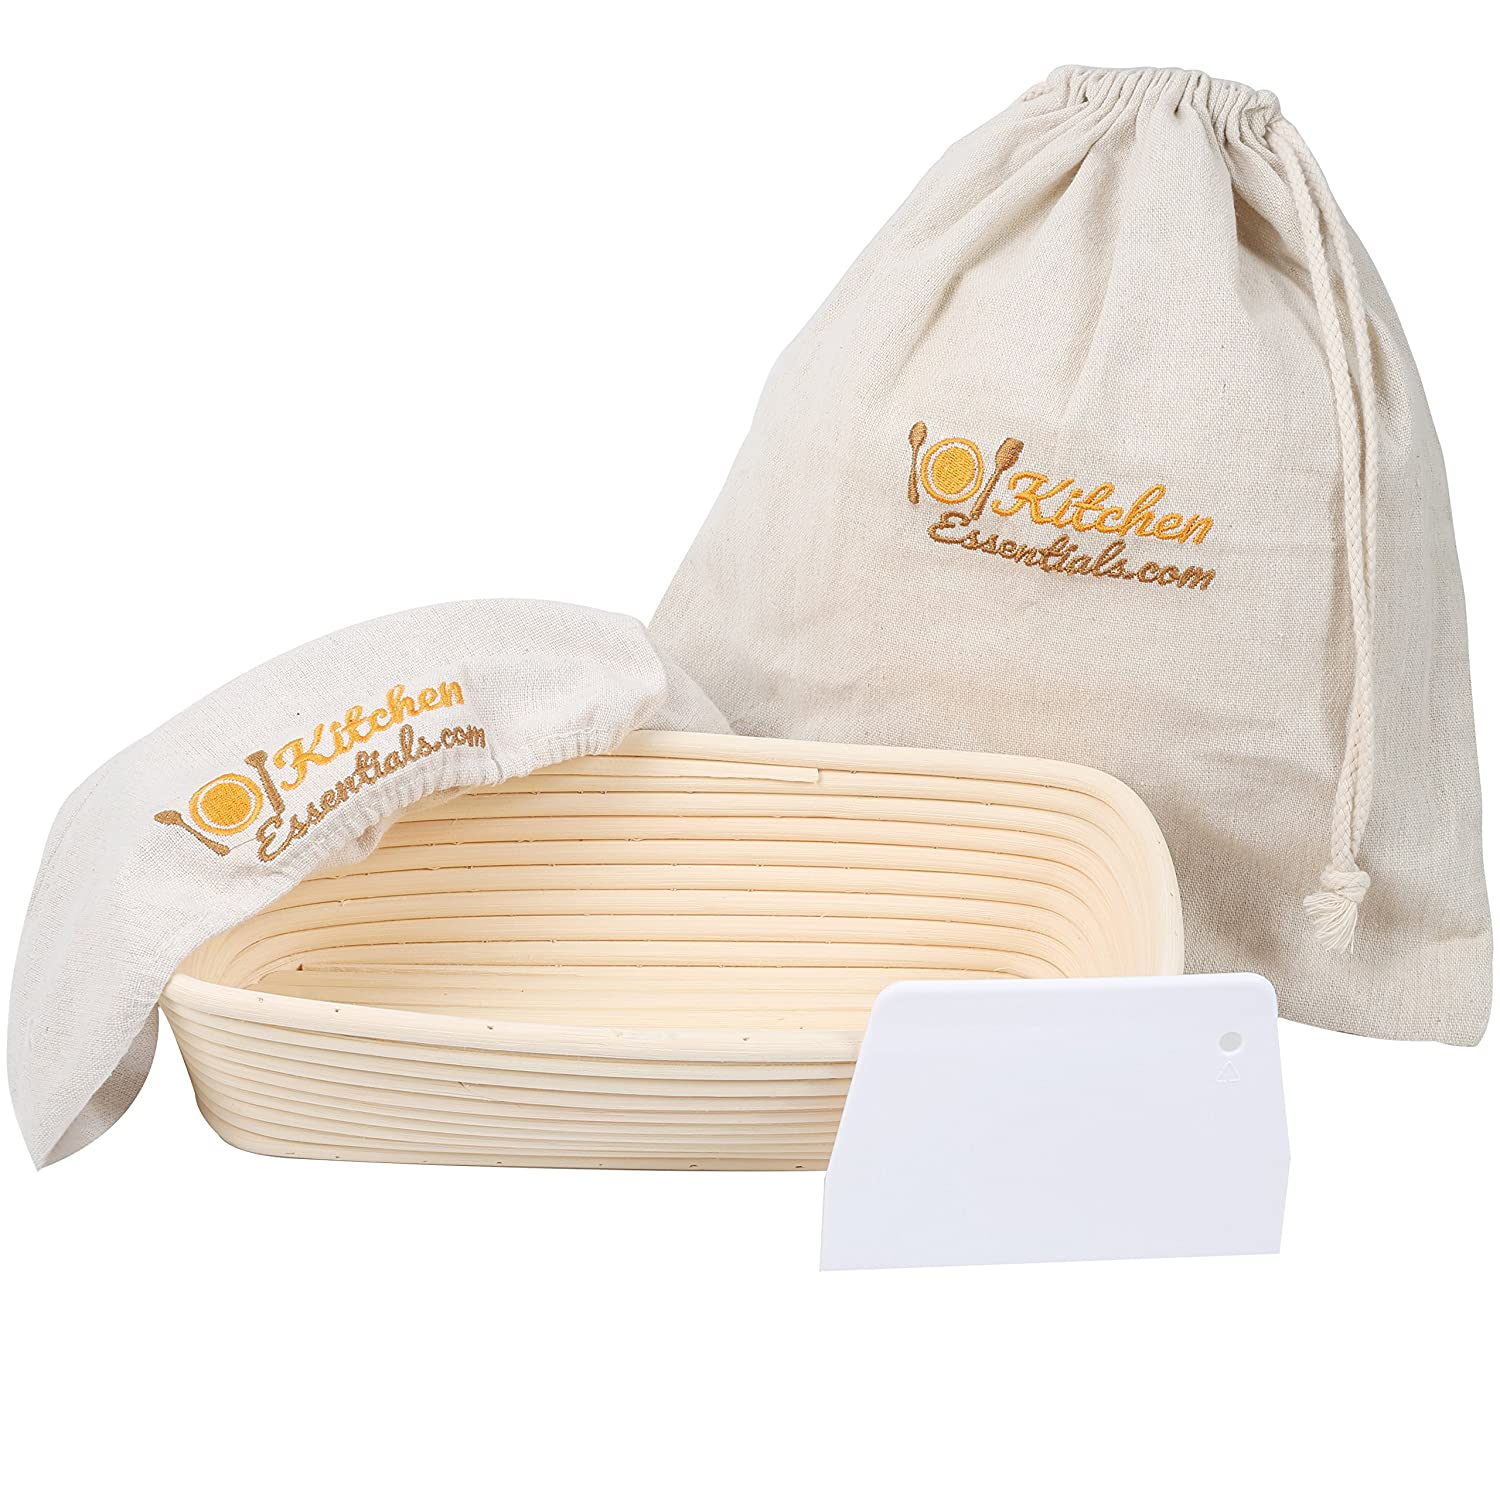 4-in-1 Oval Bread Proofing Basket Set - 12 inch Banneton Proofing Basket + Liner + Scraper + Linen Bag - Rectangle Brotform Proofer Bowl for Artisan Bread, Sourdough, Loaves & Others 101KitchenEssentials